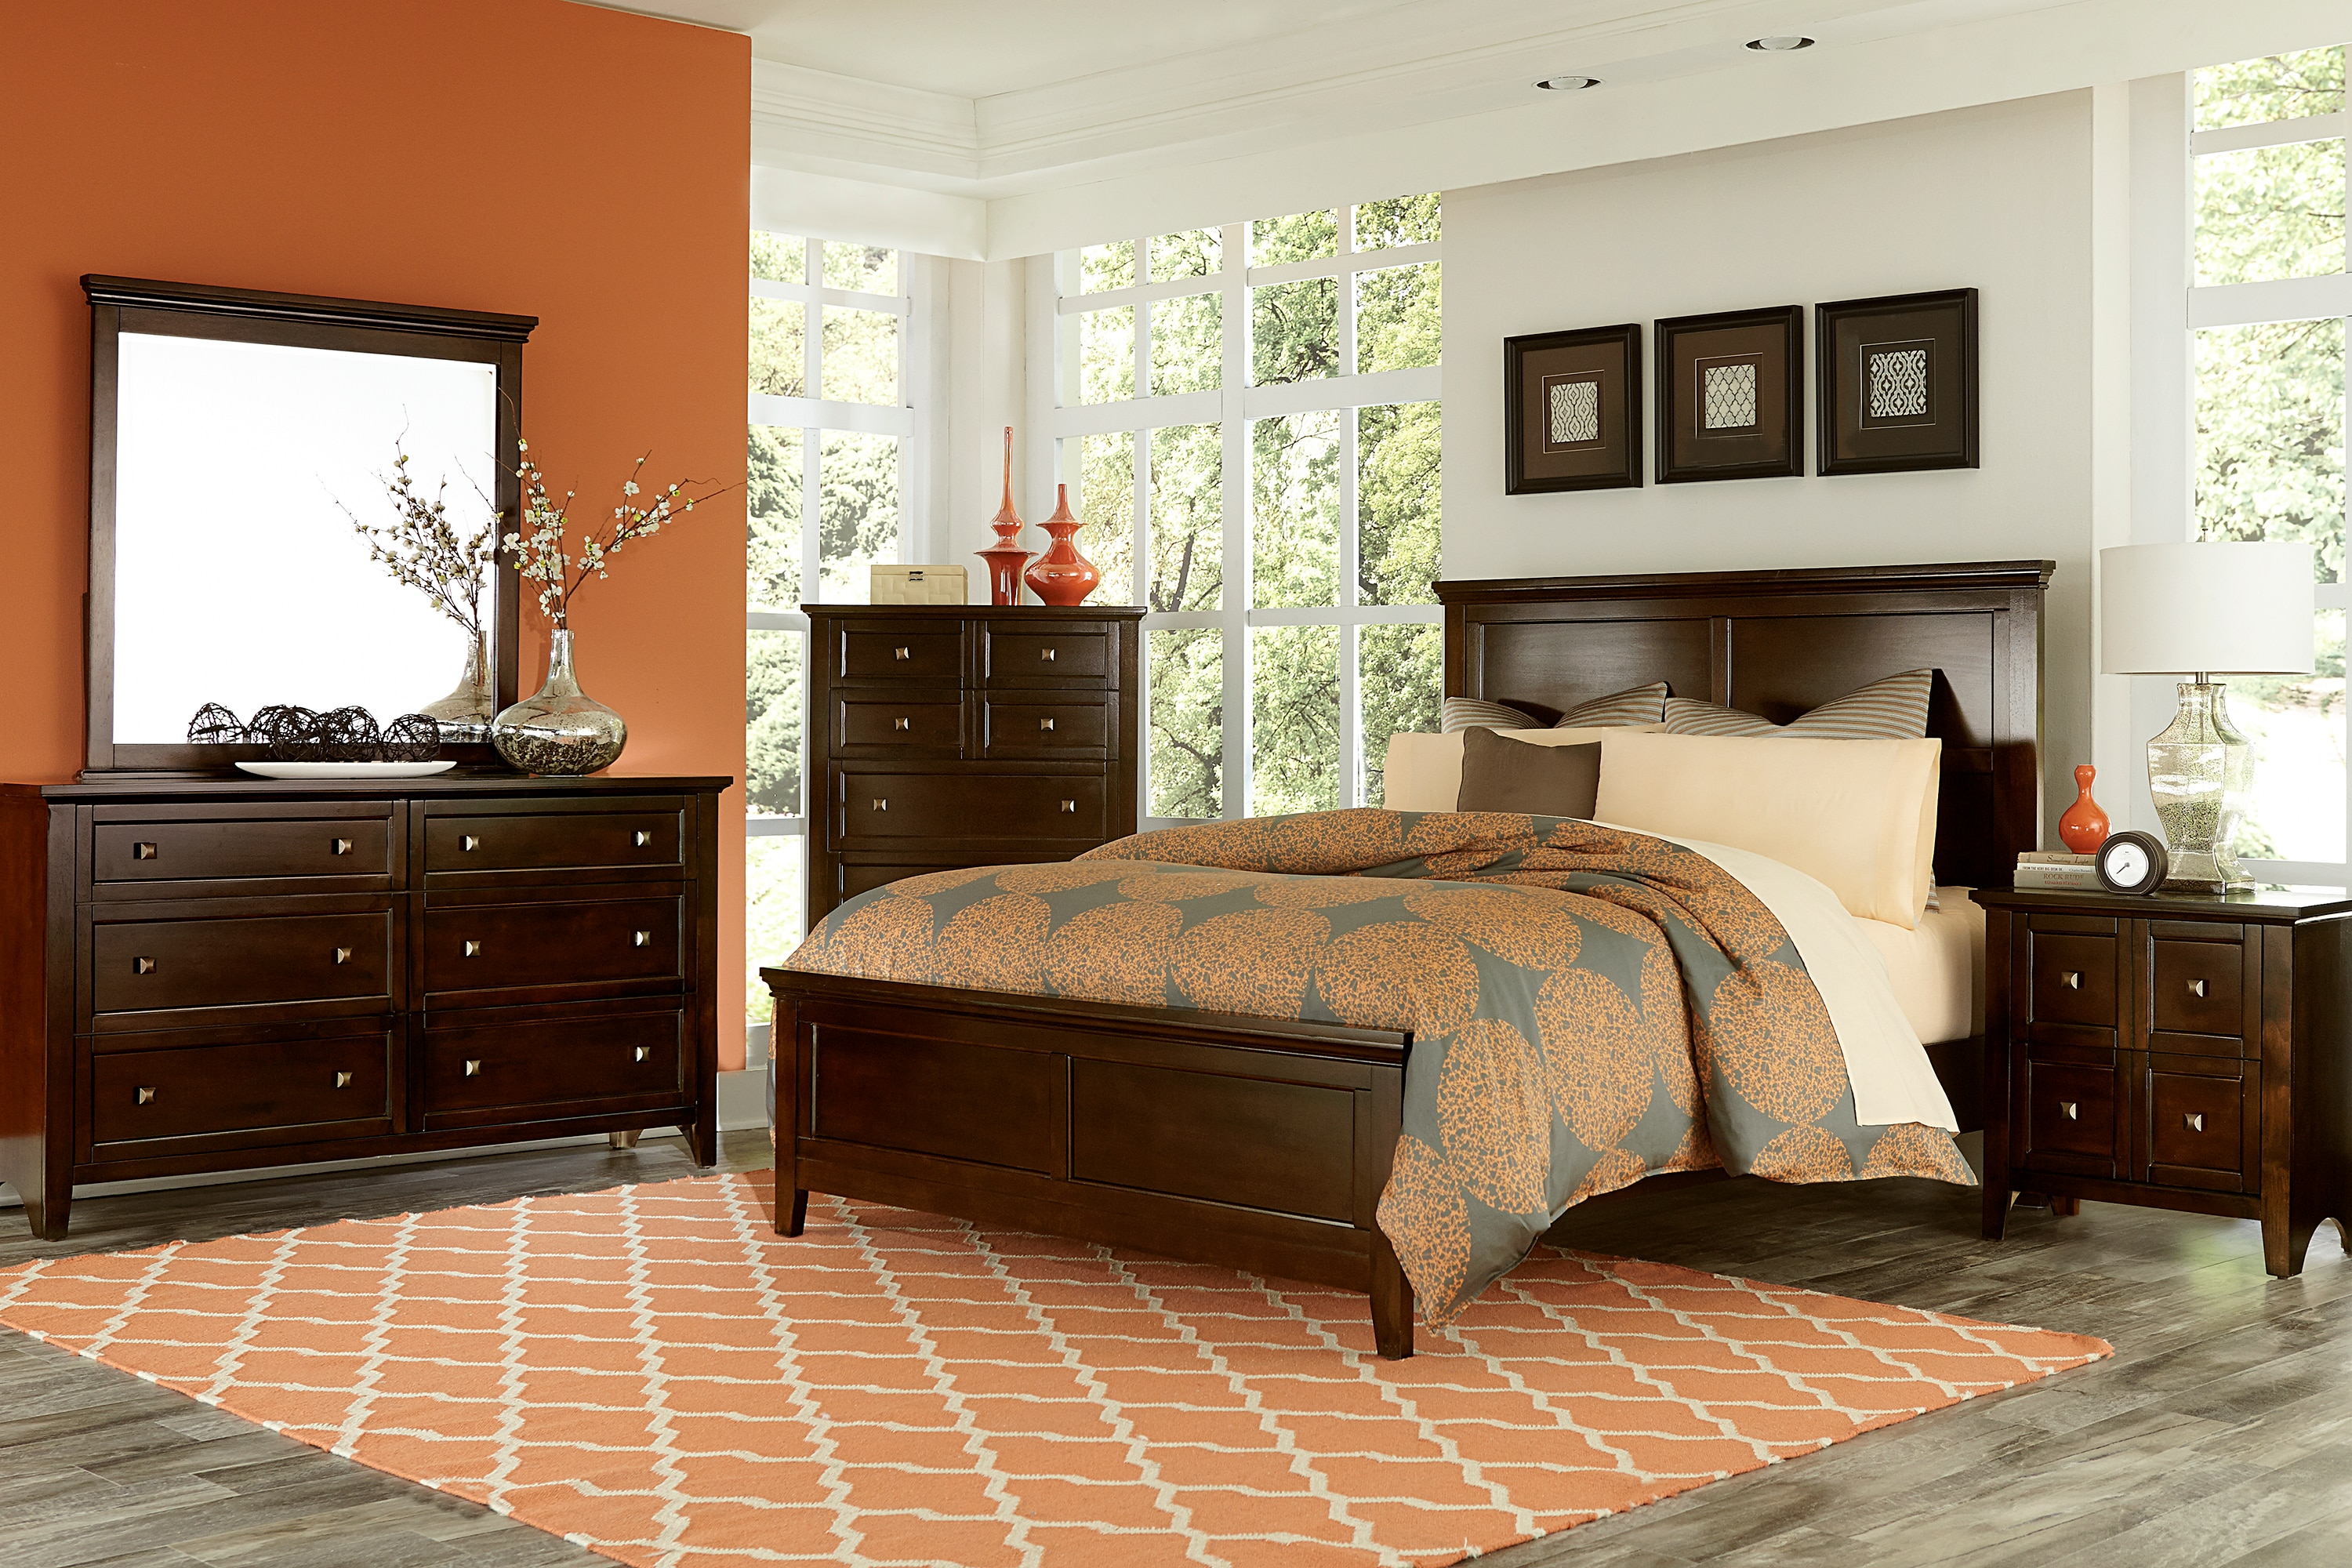 Melbourne 4-Piece Queen Bedroom Set - Cherry